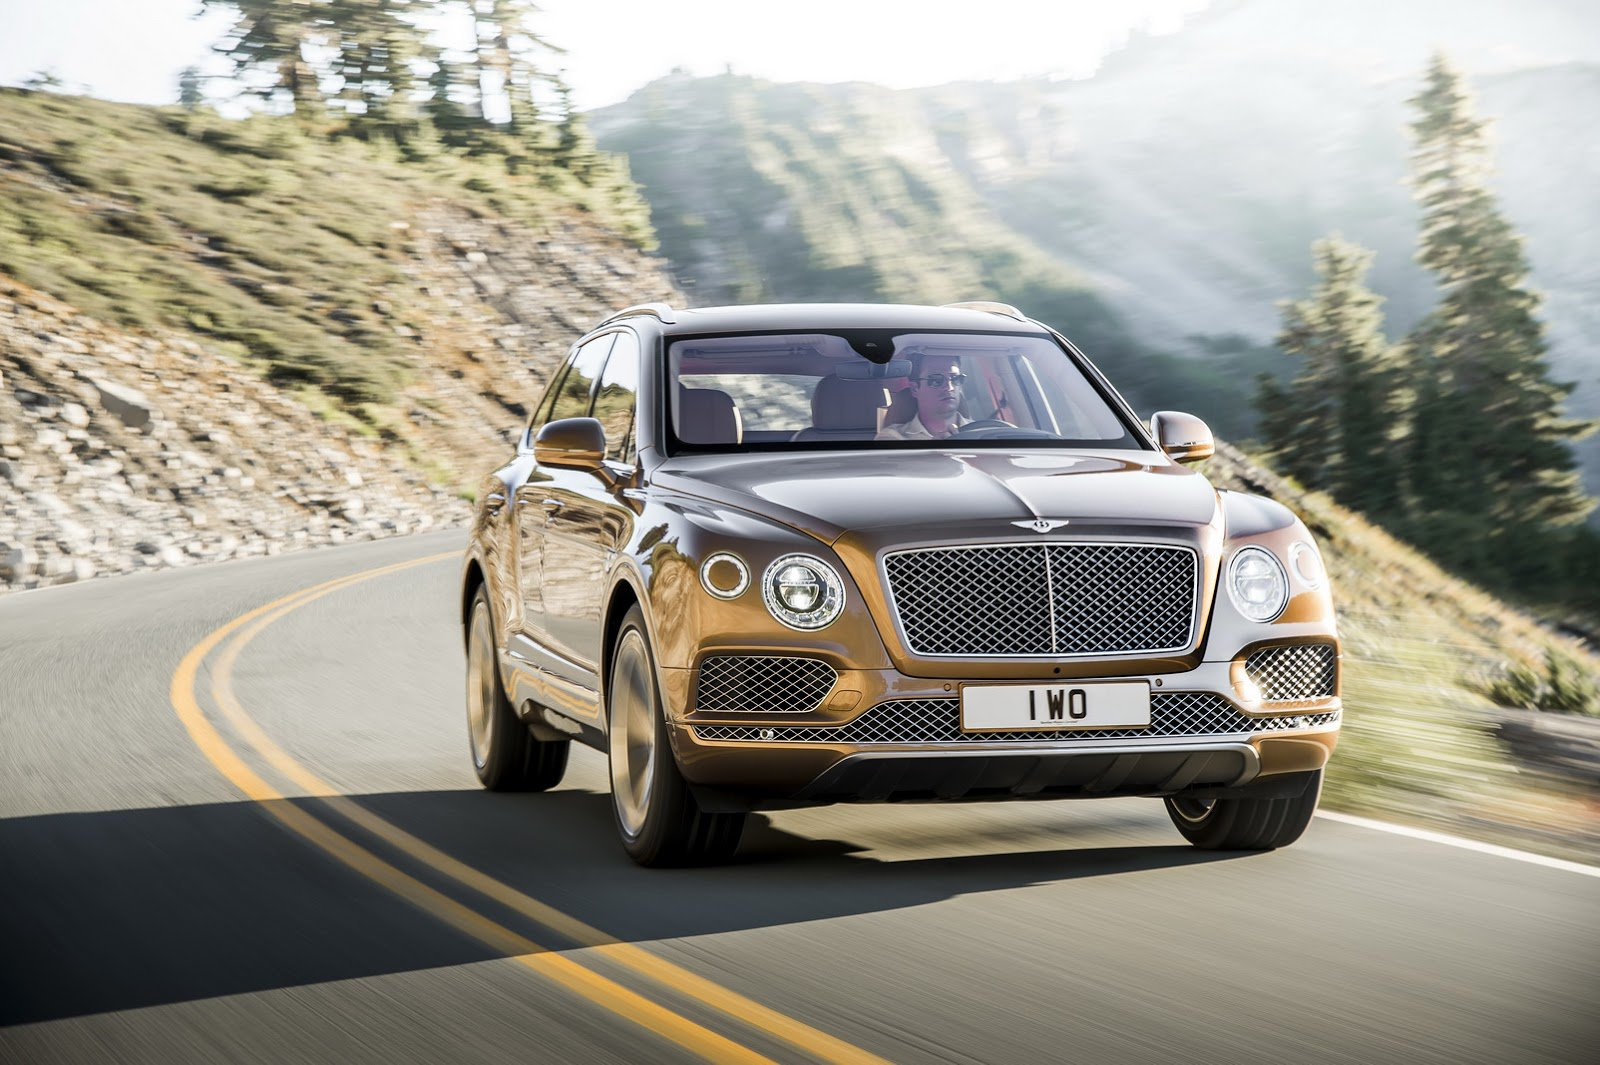 of bentleys download the bentayga px resolution image here cars with does do cost size awesome beautiful so luxury why much bentley how original click